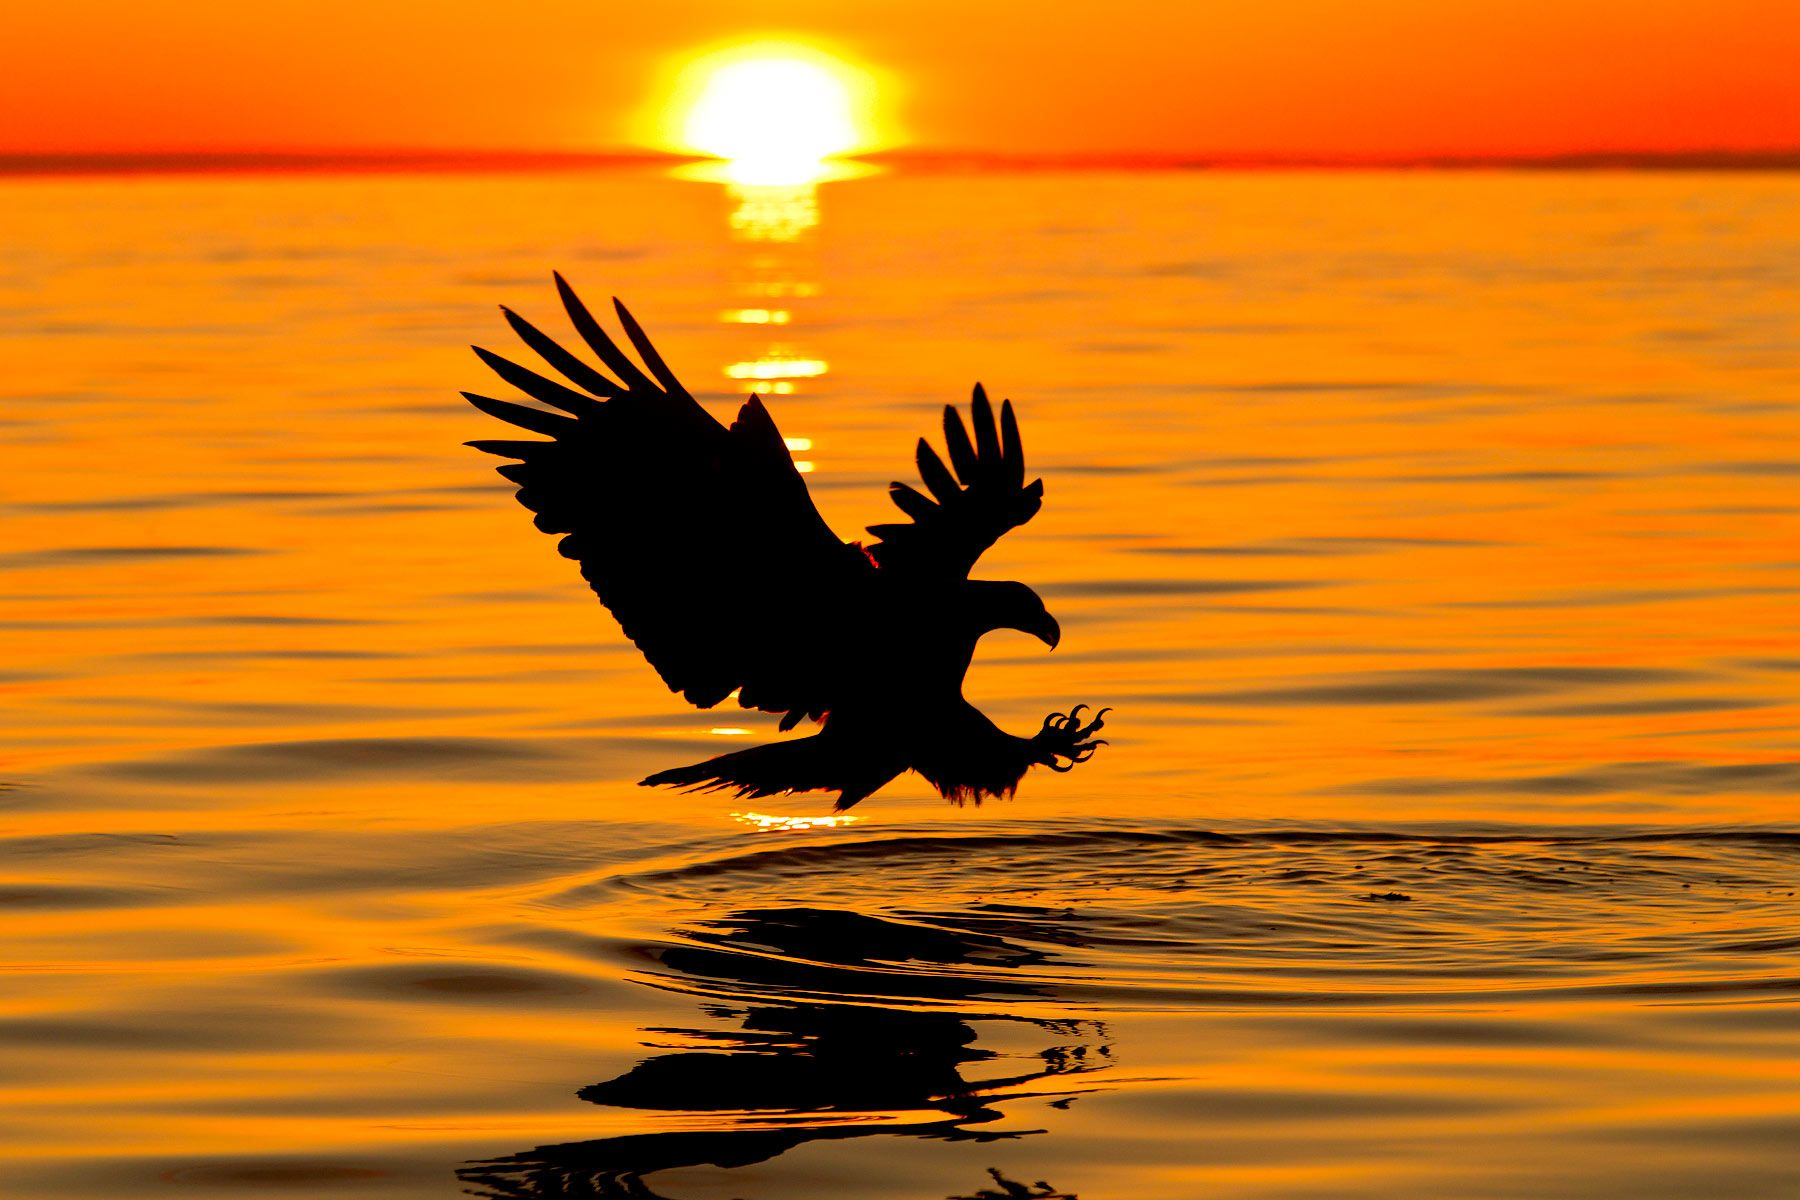 Bald-eagle-catching-fish-at-sun-set-E07G1025-Kachemak-Bay,-Homer,-AK.jpg